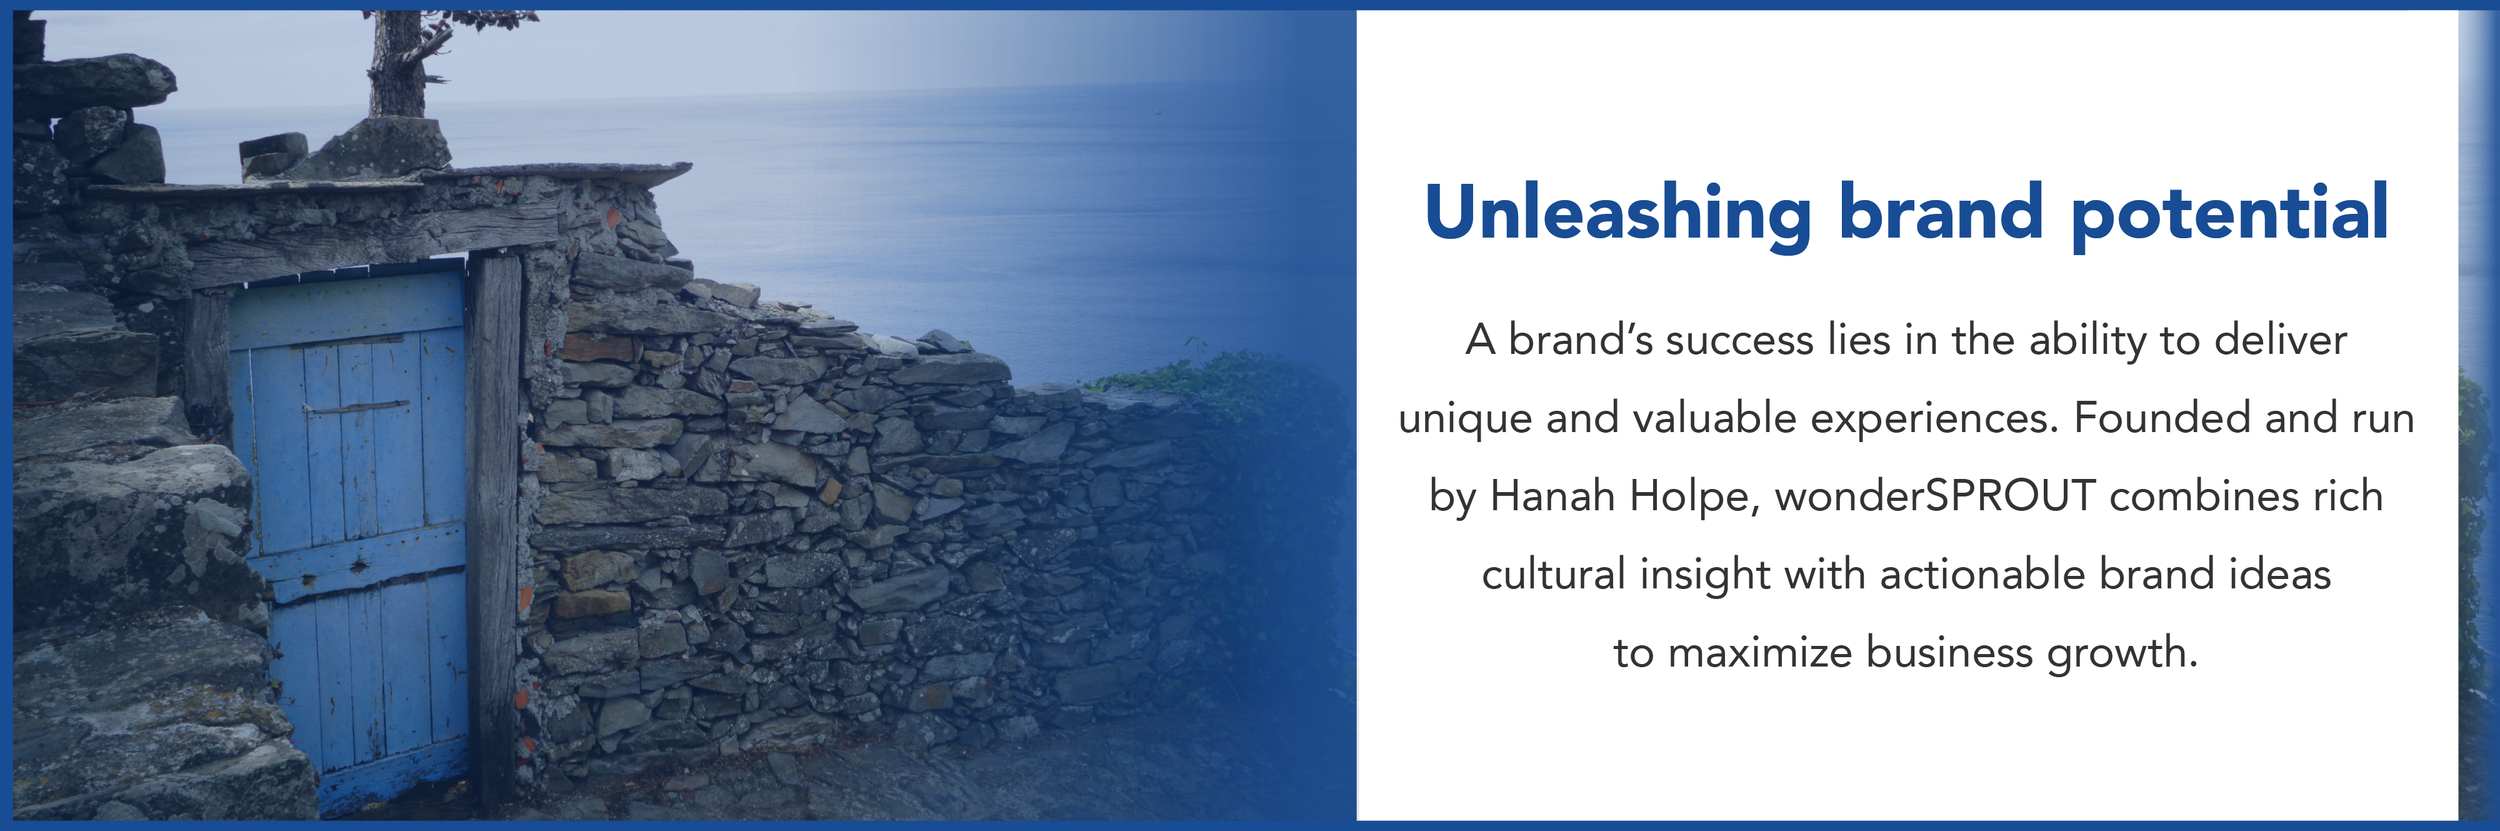 HOME PAGE AD_unleash brand potential-01.png